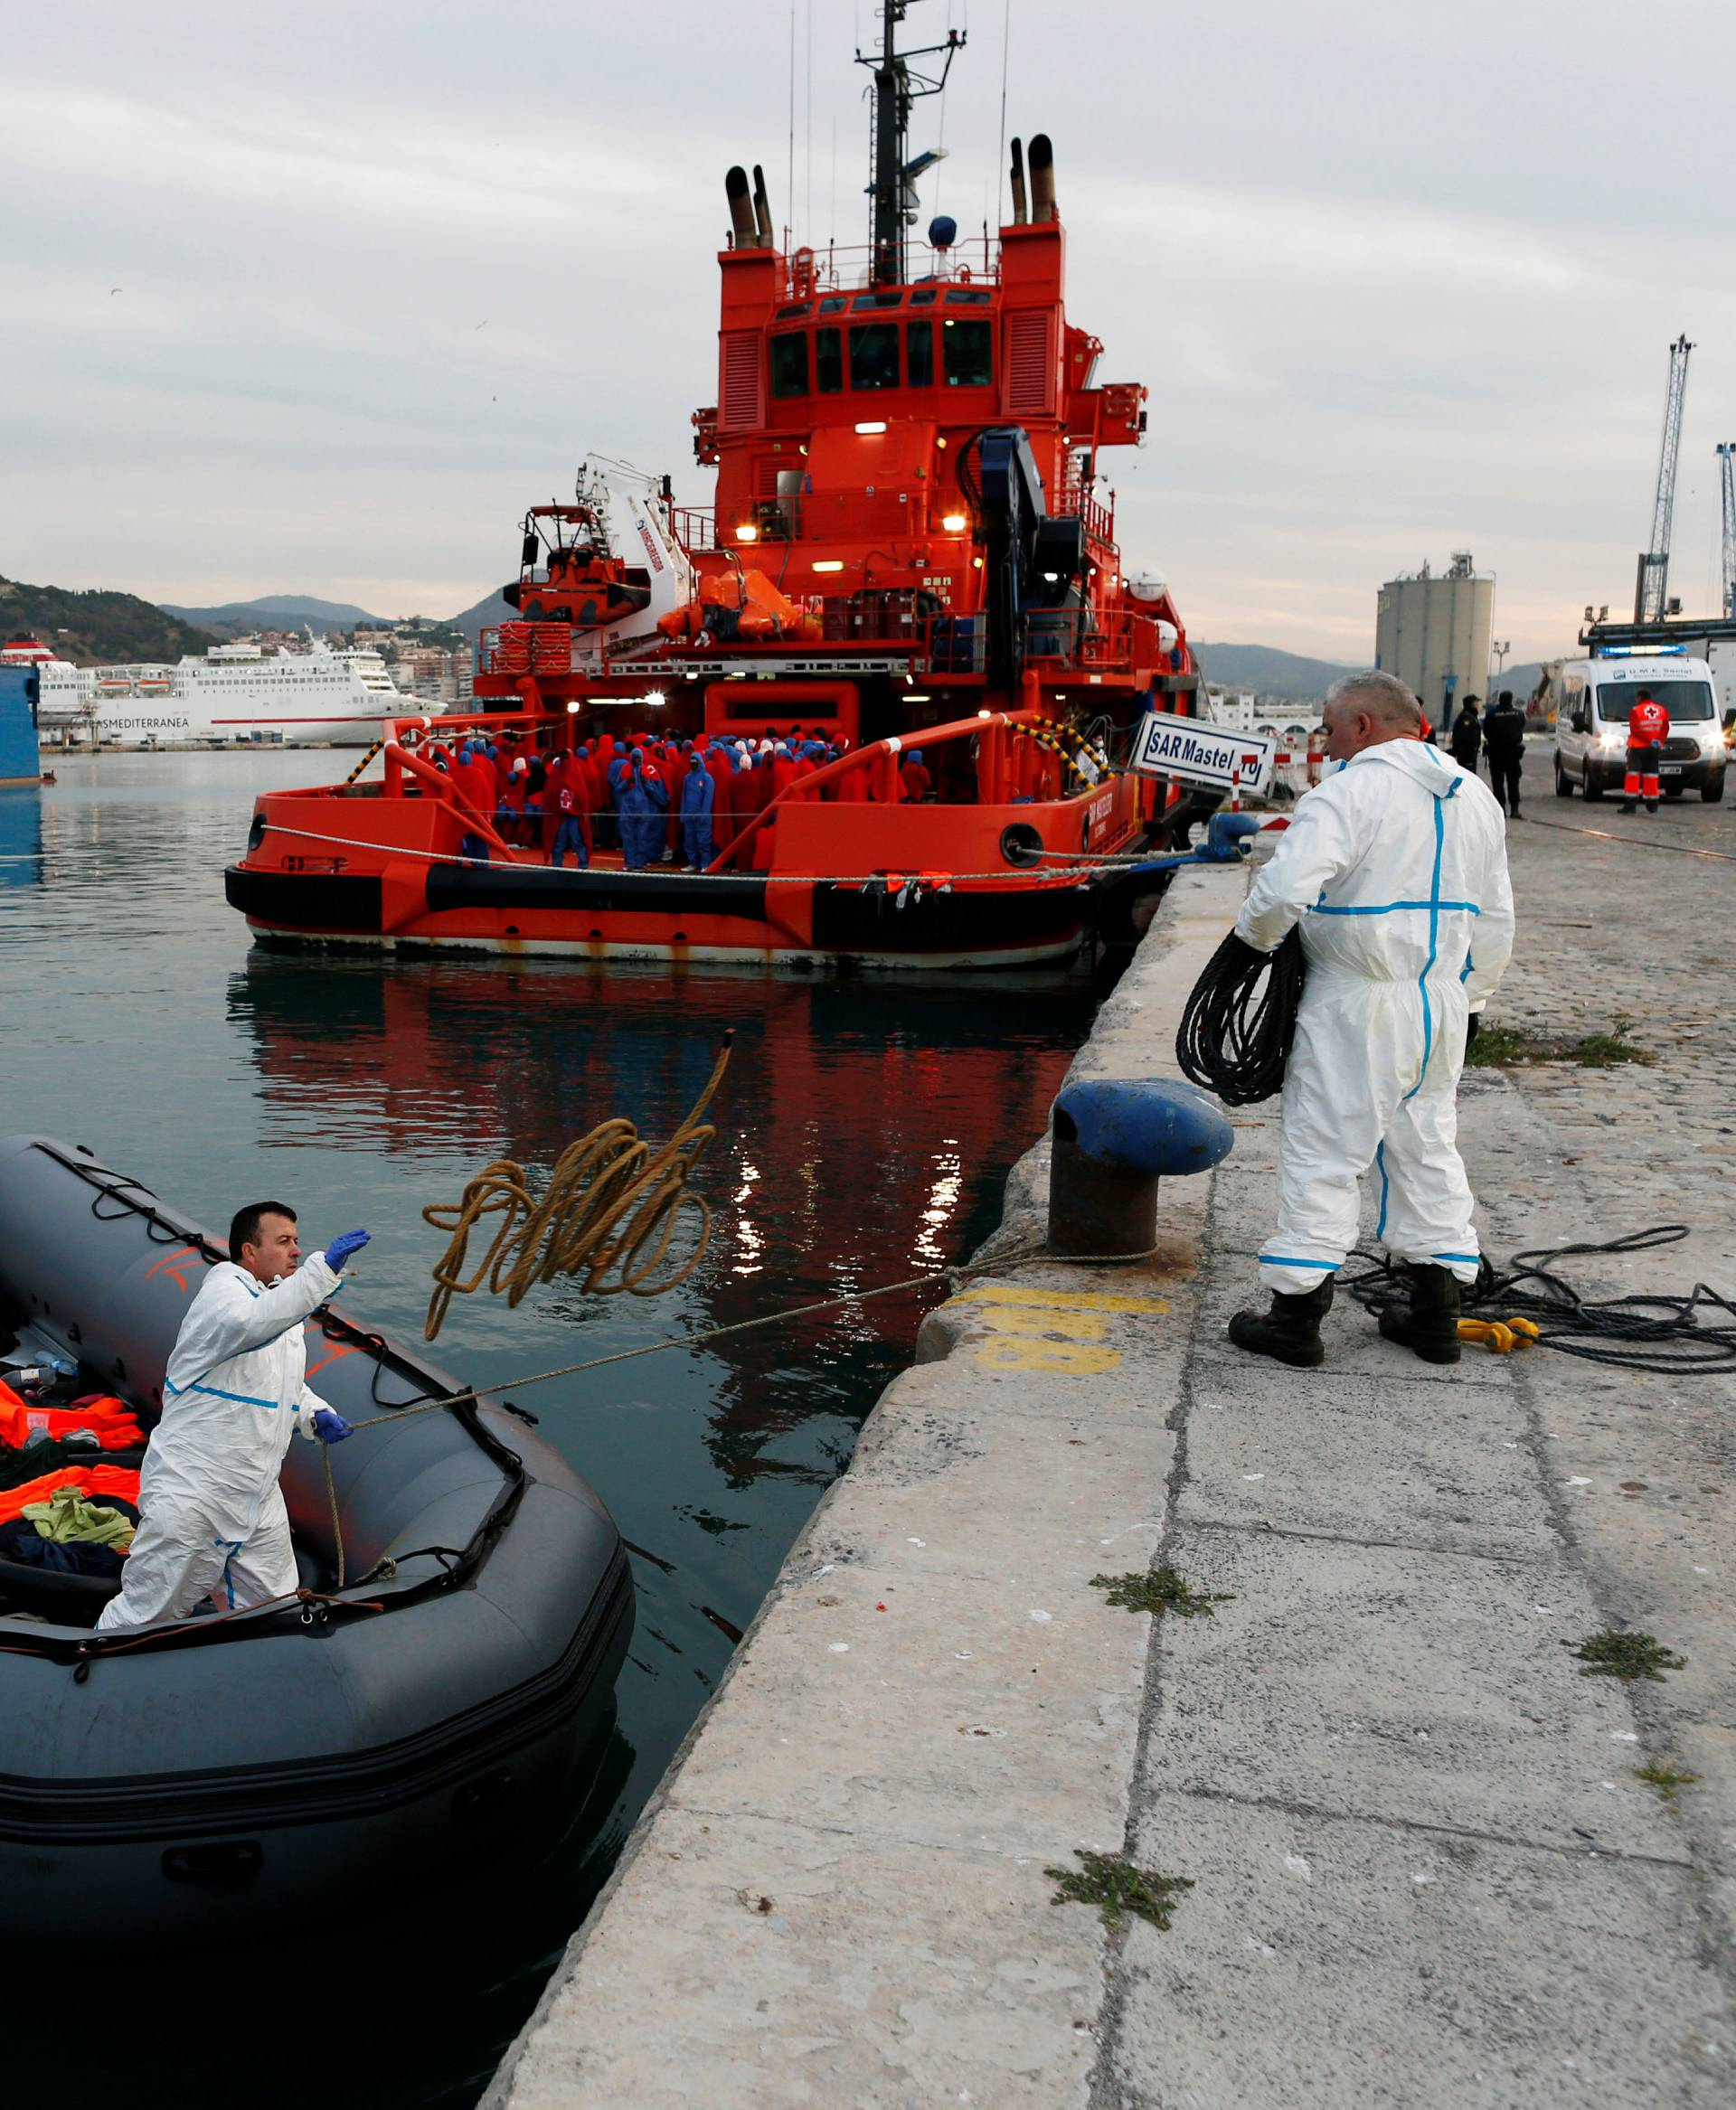 Migrants wait to disembark from a rescue boat as they watch as rescuers remove their floats and life-vests from a dinghy at dawn at the port of Malaga